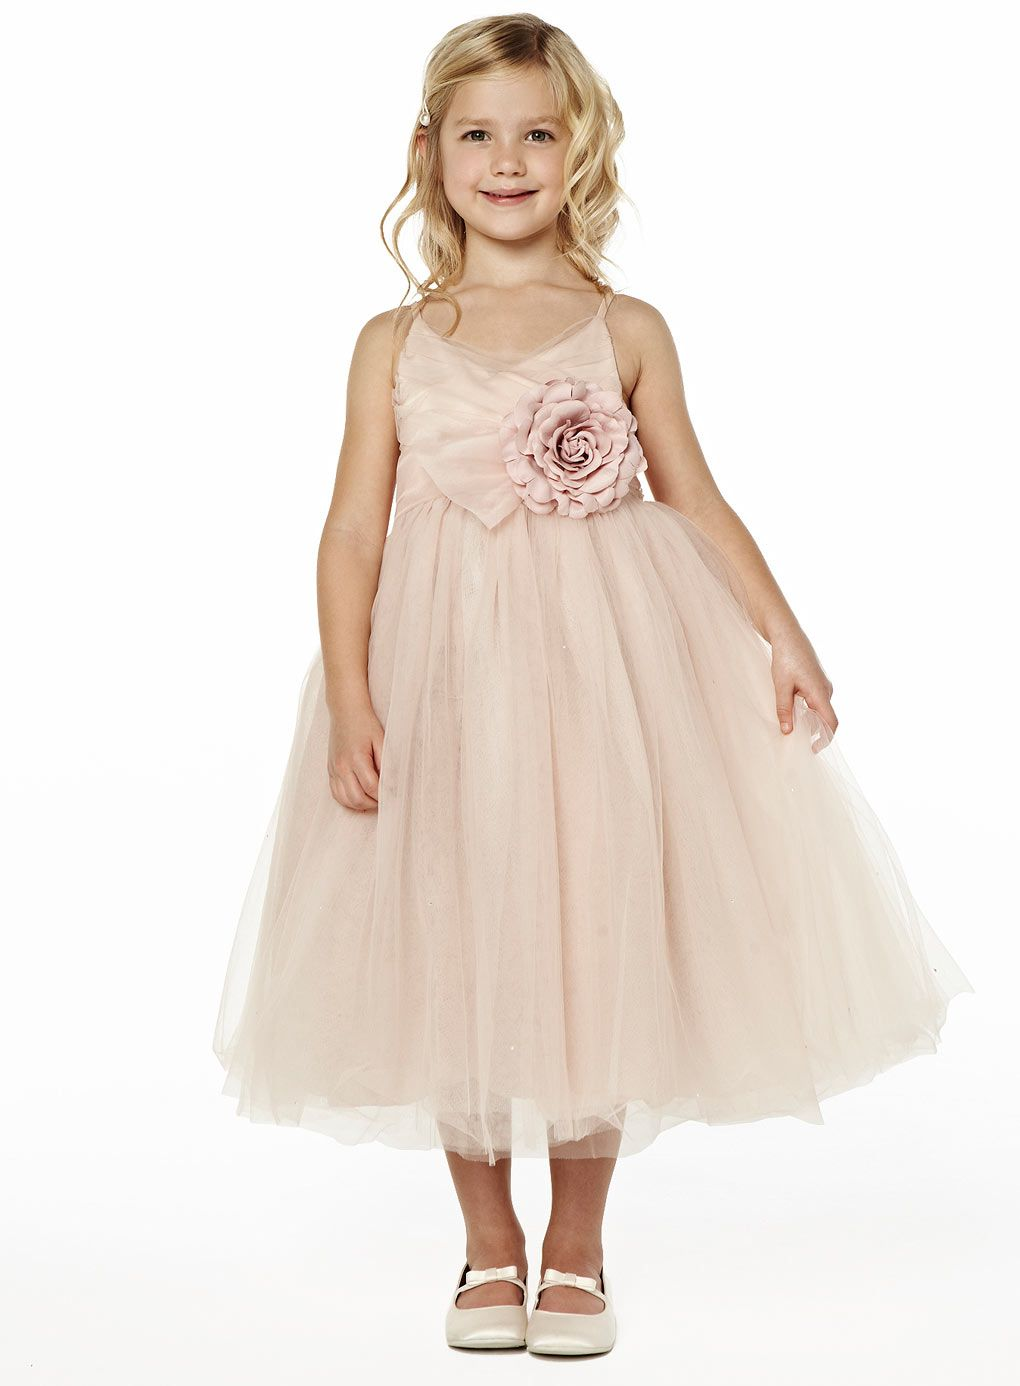 Pearl pink double straps ankle length tulle layered flower girl searching for princhar tulle flower girl dressjunior bridesmaids dress little girl toddler dress find it and much more at the amazon fashion store ombrellifo Gallery